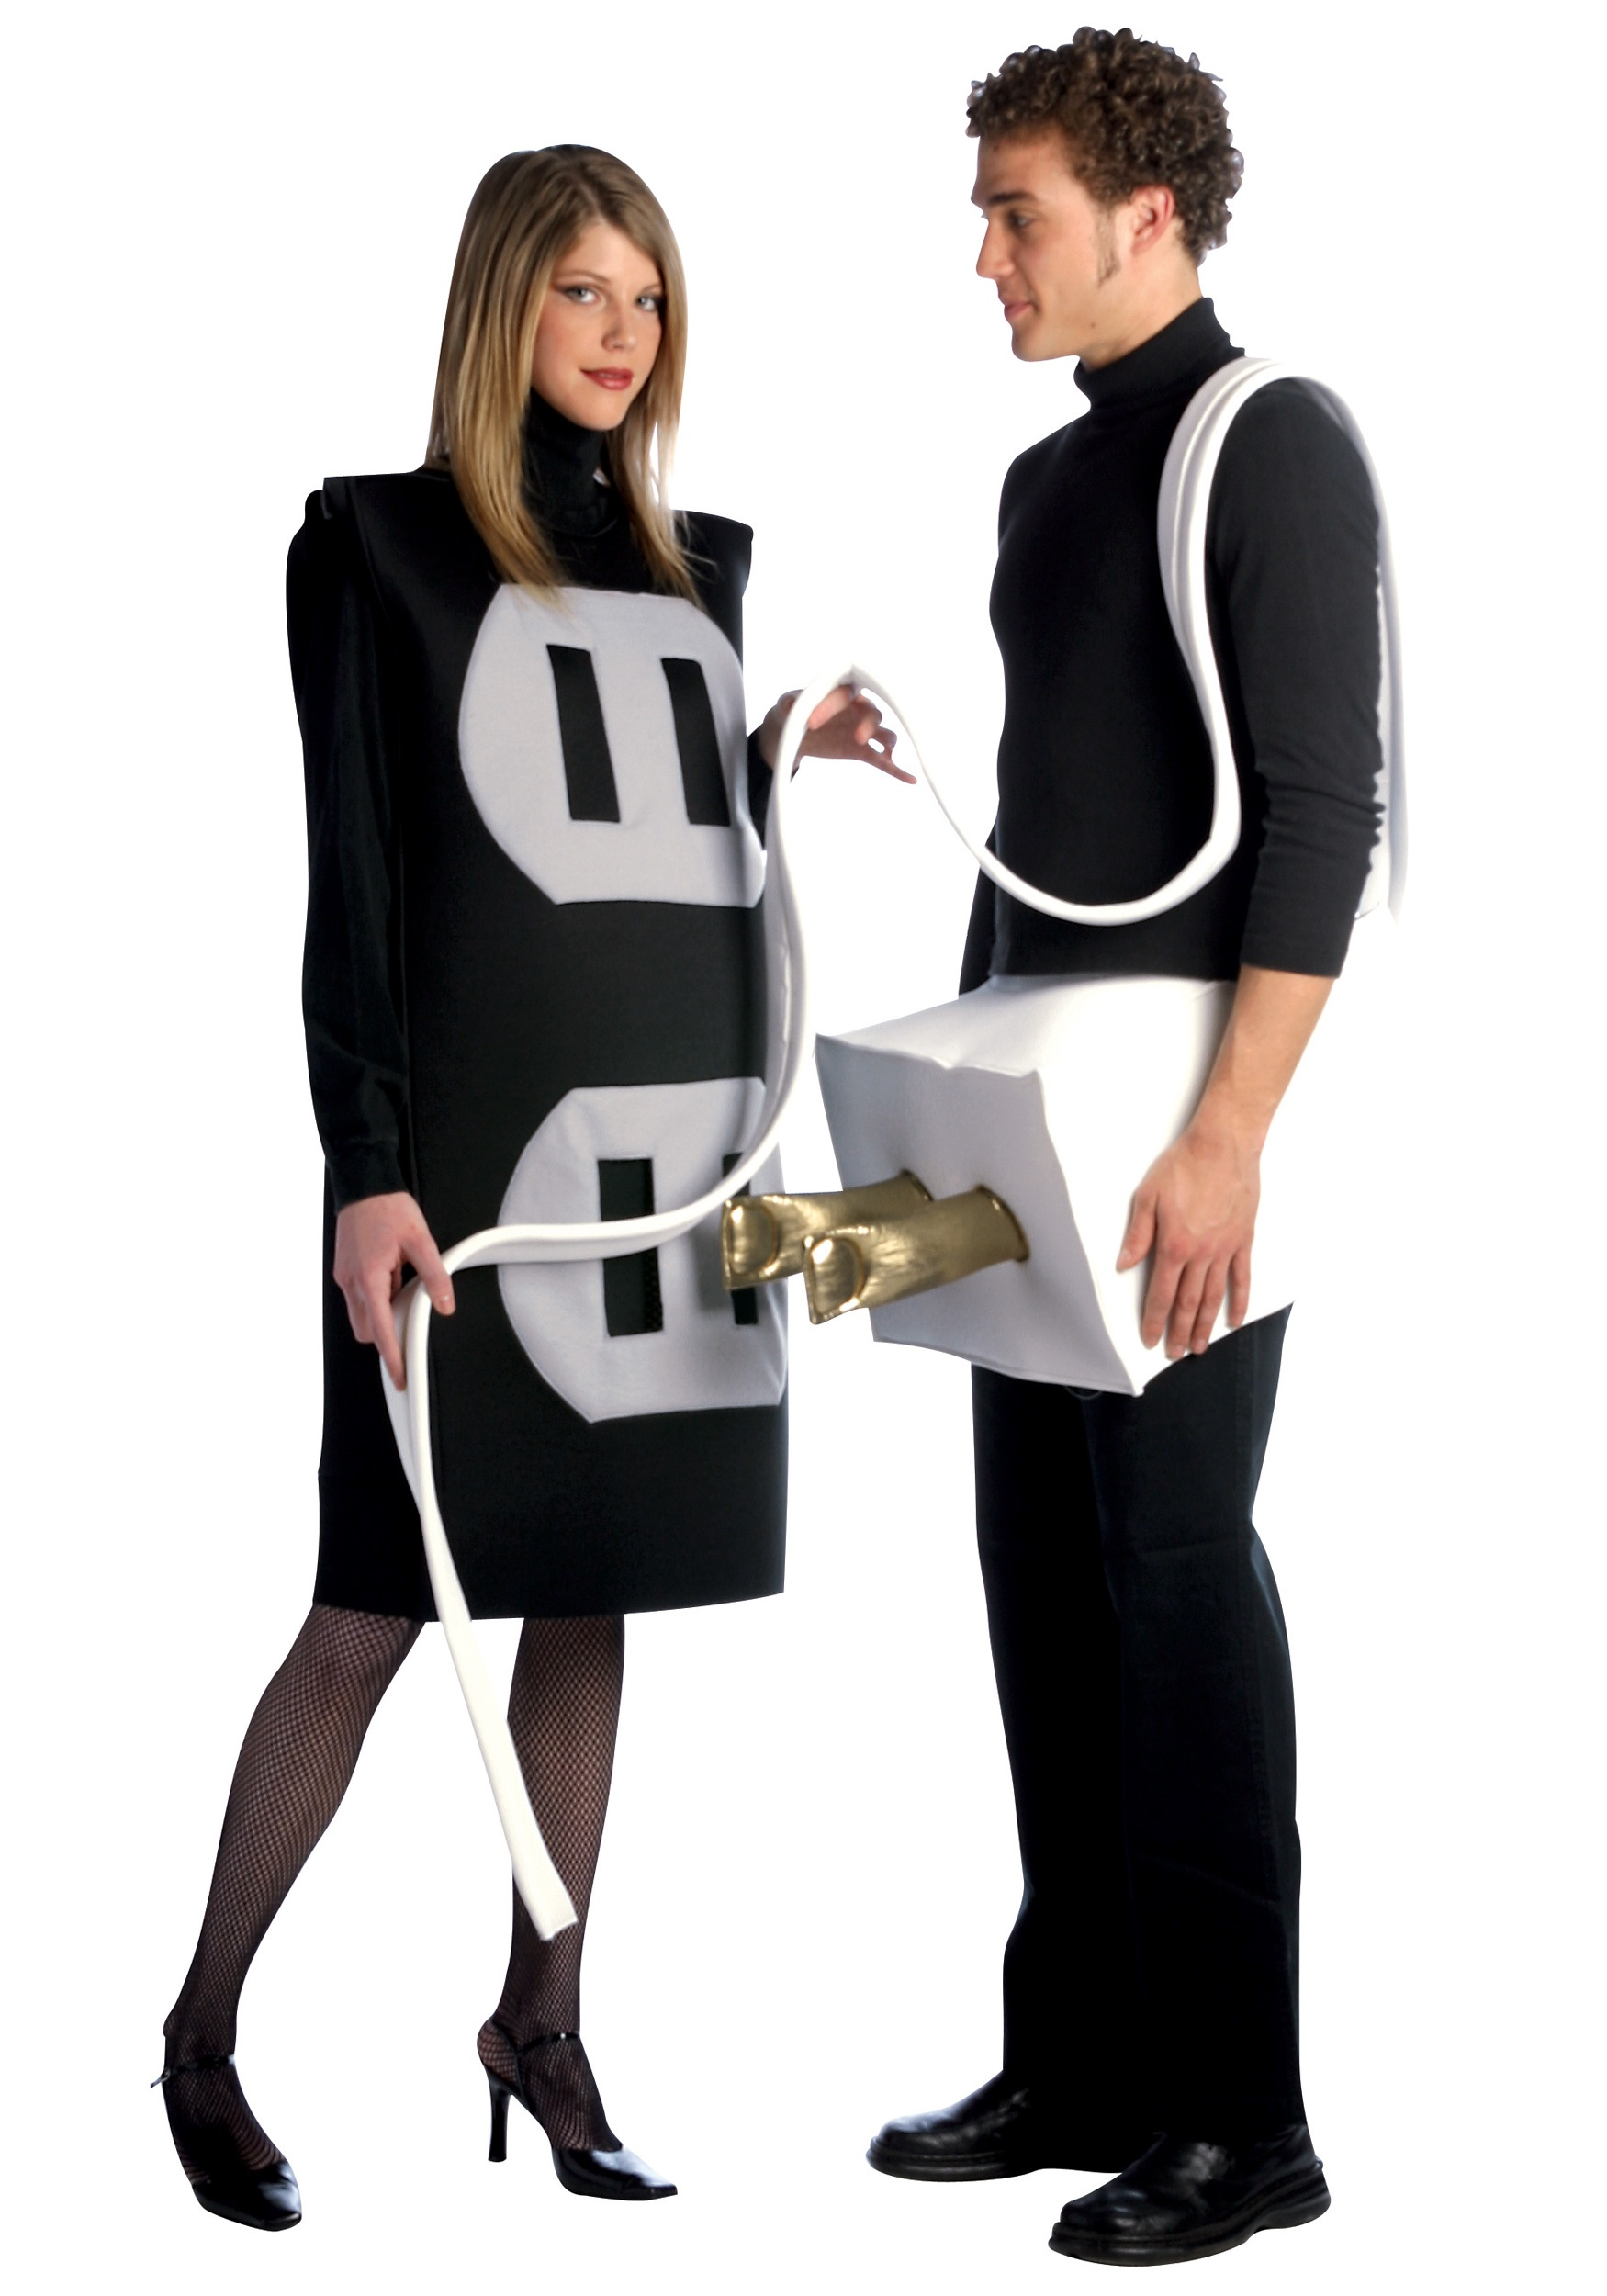 Plug and socket costume funny couples costume ideas plug and socket costume solutioingenieria Image collections